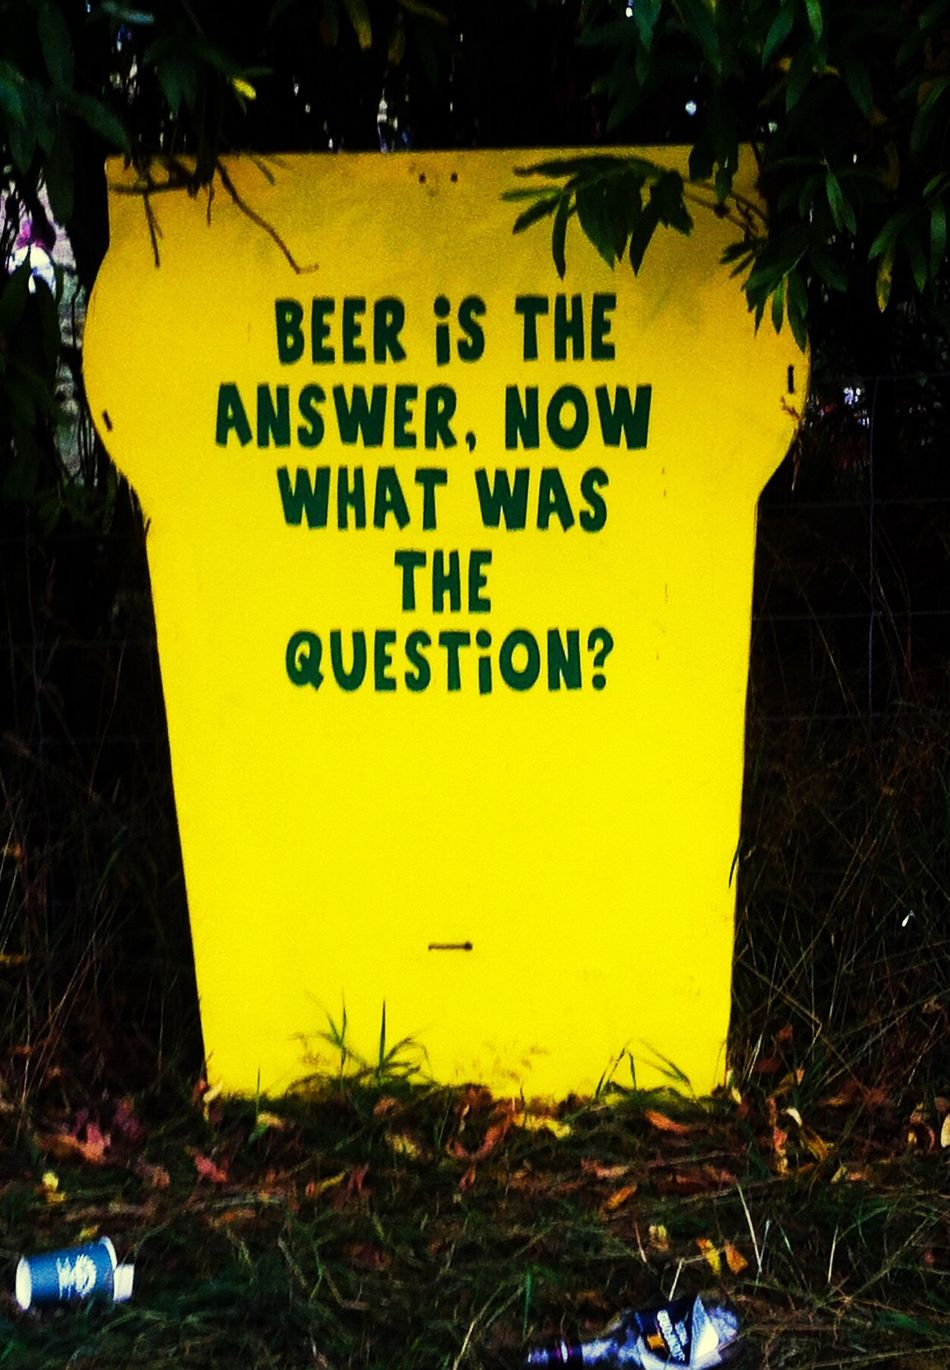 Just For Fun Yellow Tree Outdoors Day Joke Information Sign Drink Up Beer Beer Time Fun Funny Grassy Litter